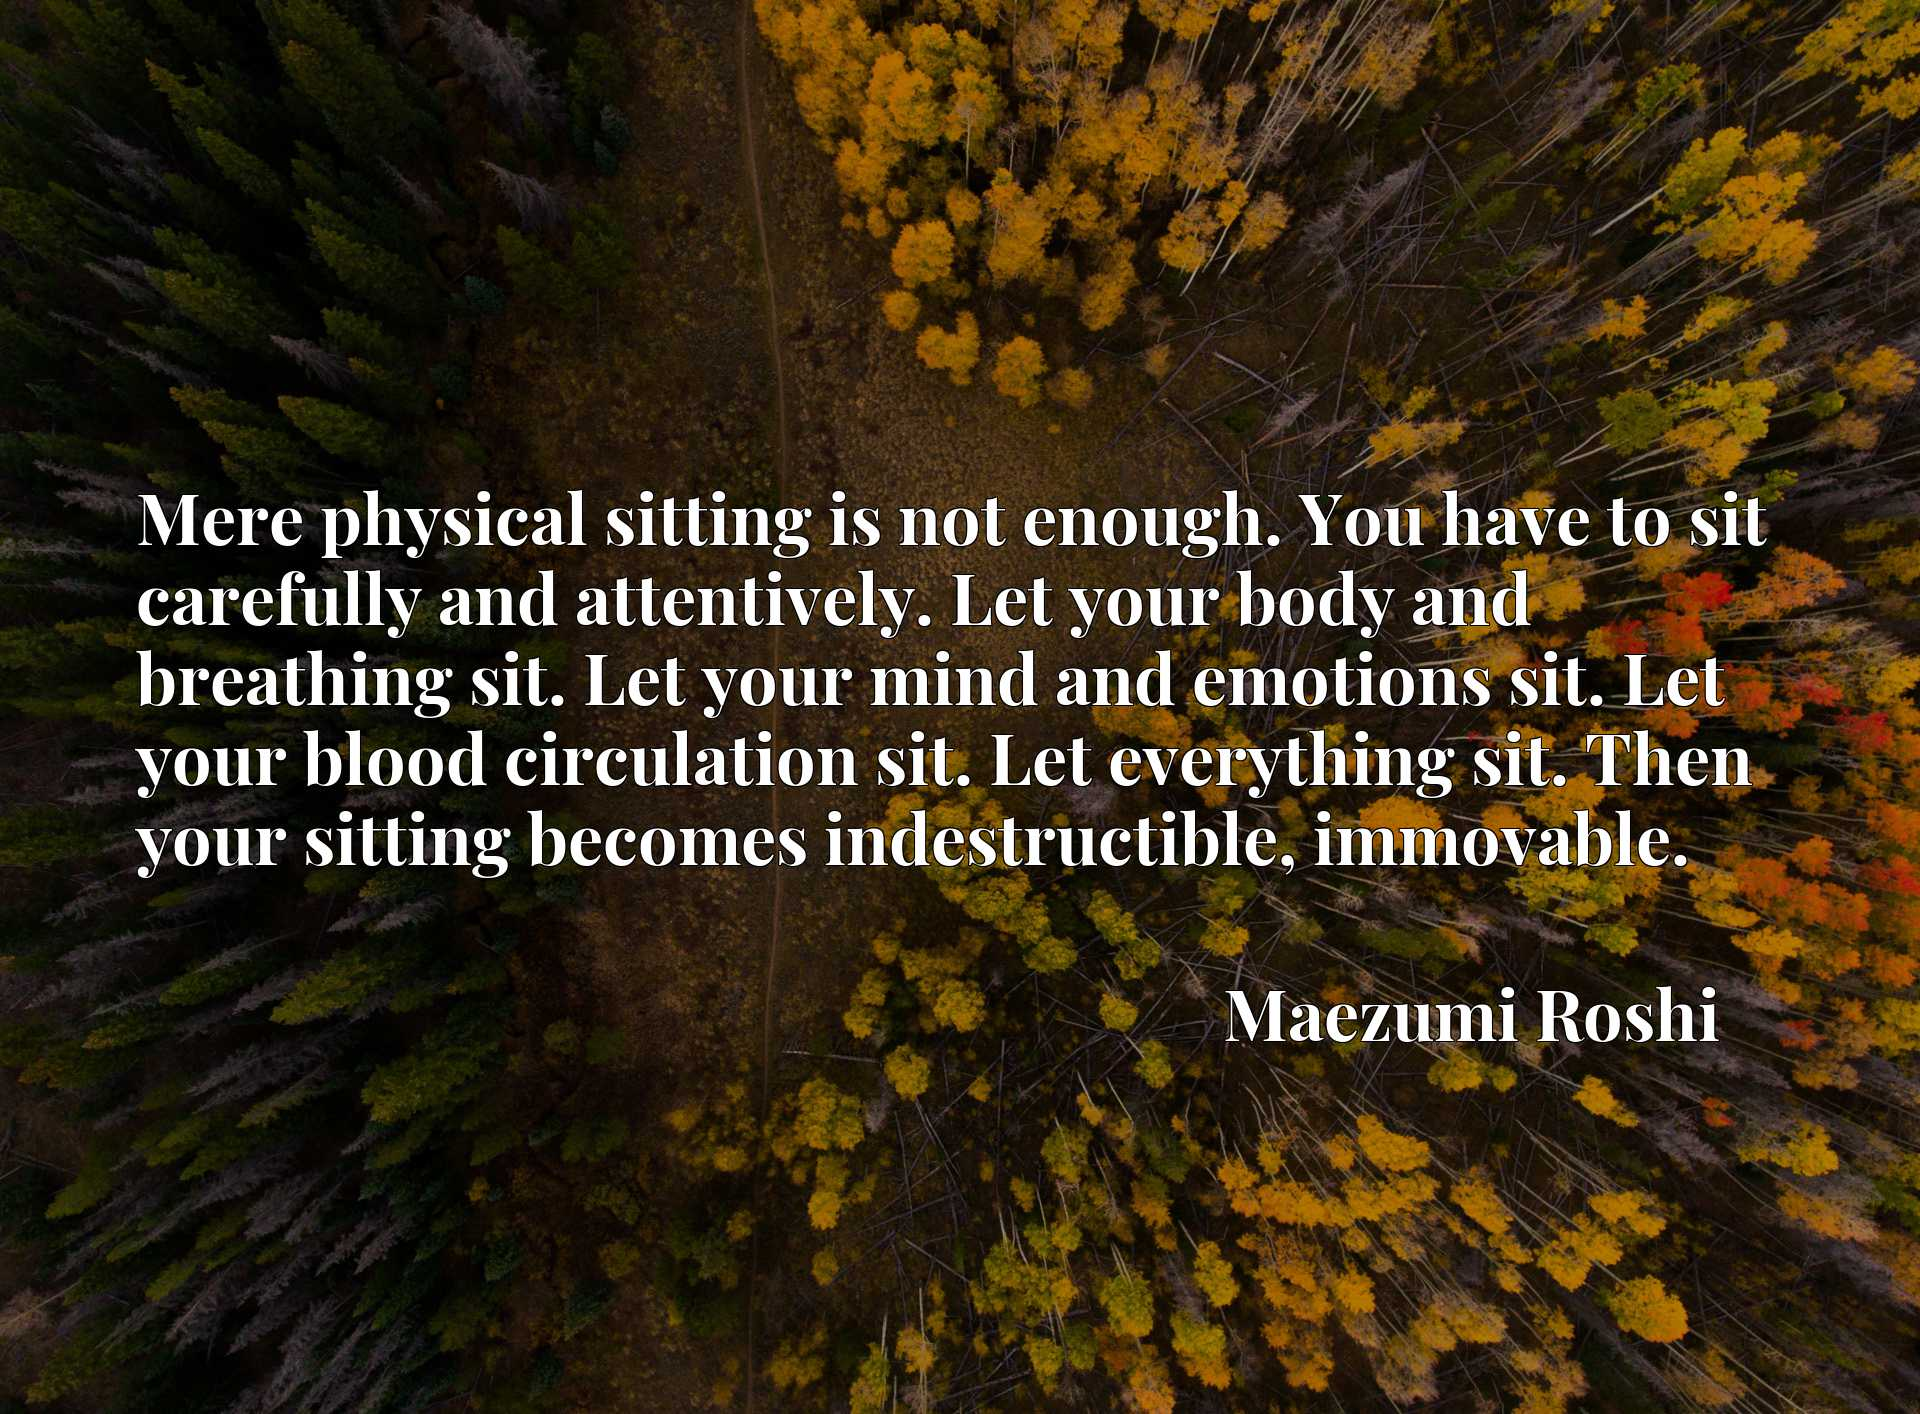 Mere physical sitting is not enough. You have to sit carefully and attentively. Let your body and breathing sit. Let your mind and emotions sit. Let your blood circulation sit. Let everything sit. Then your sitting becomes indestructible, immovable.